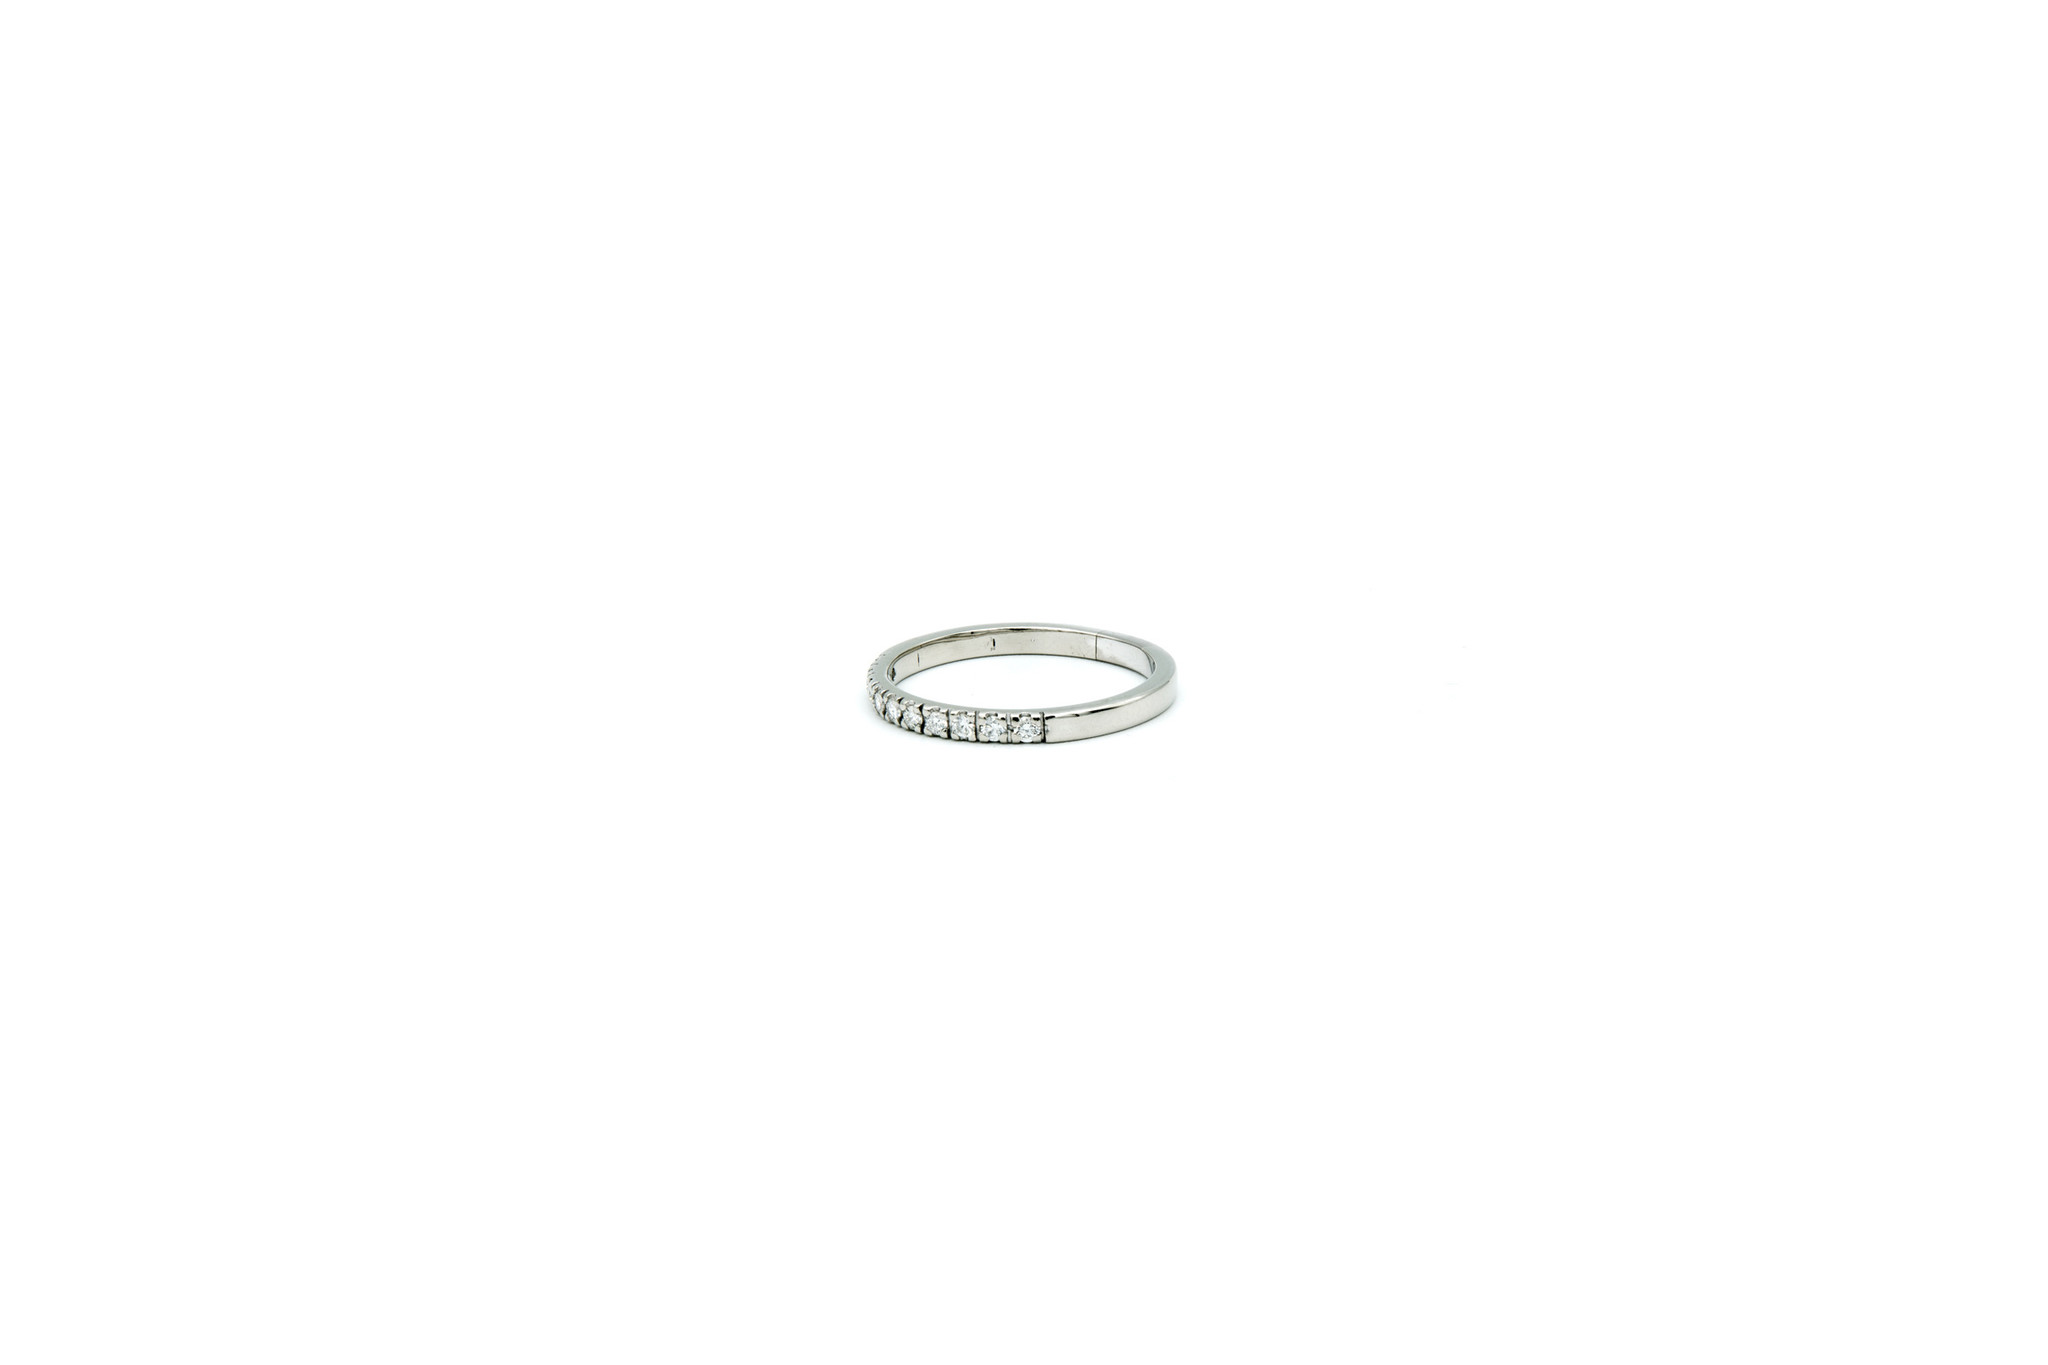 Ring smal met diamantjes-2